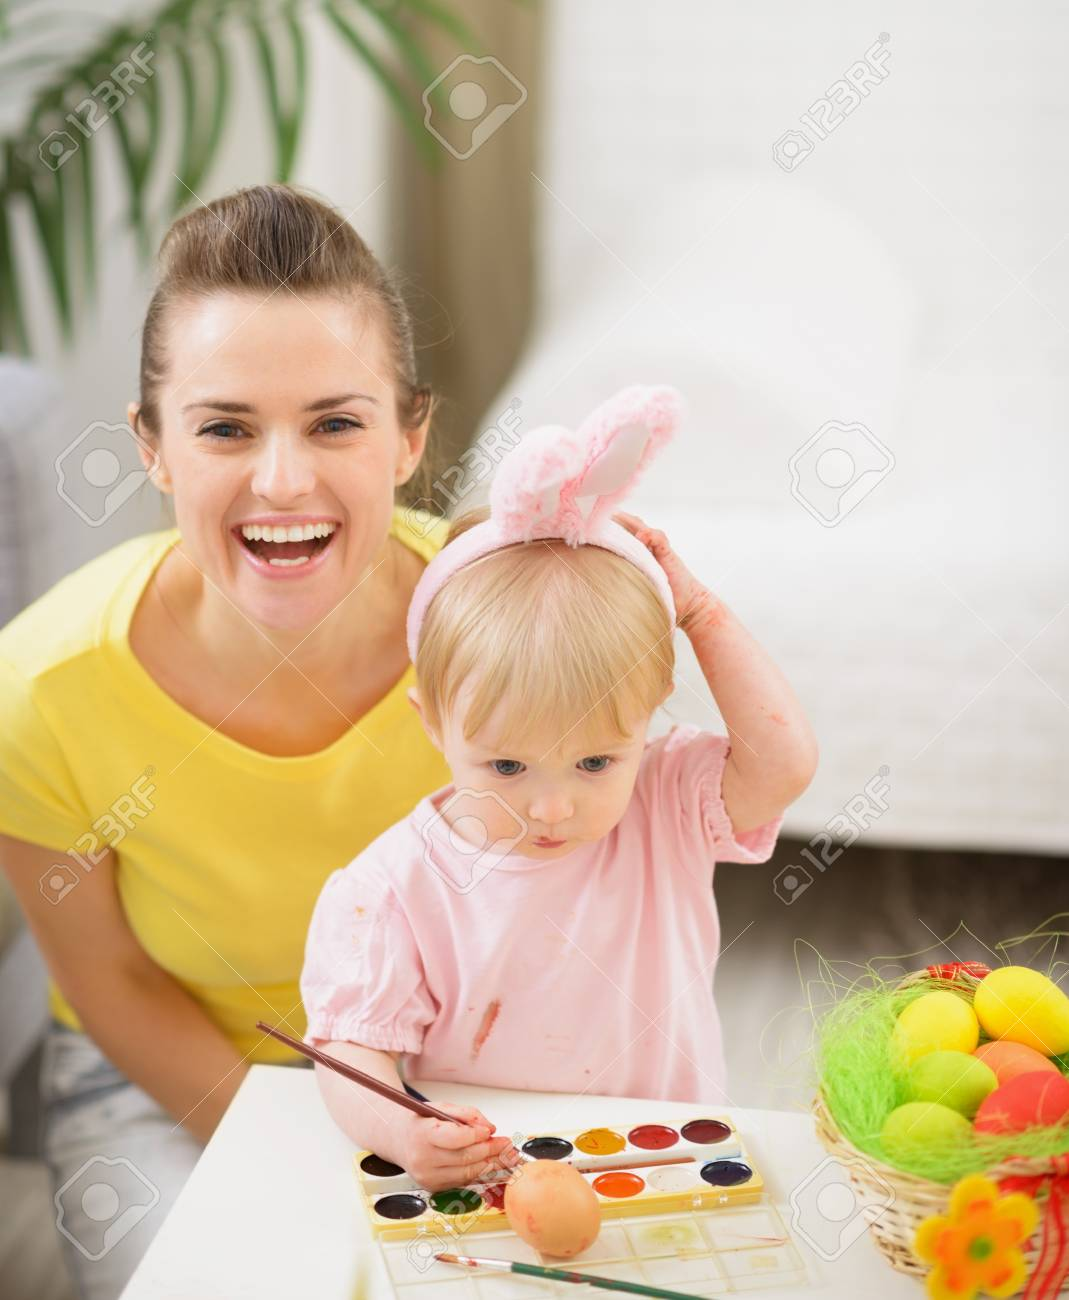 Baby and mother having fun on Easter Stock Photo - 17304846